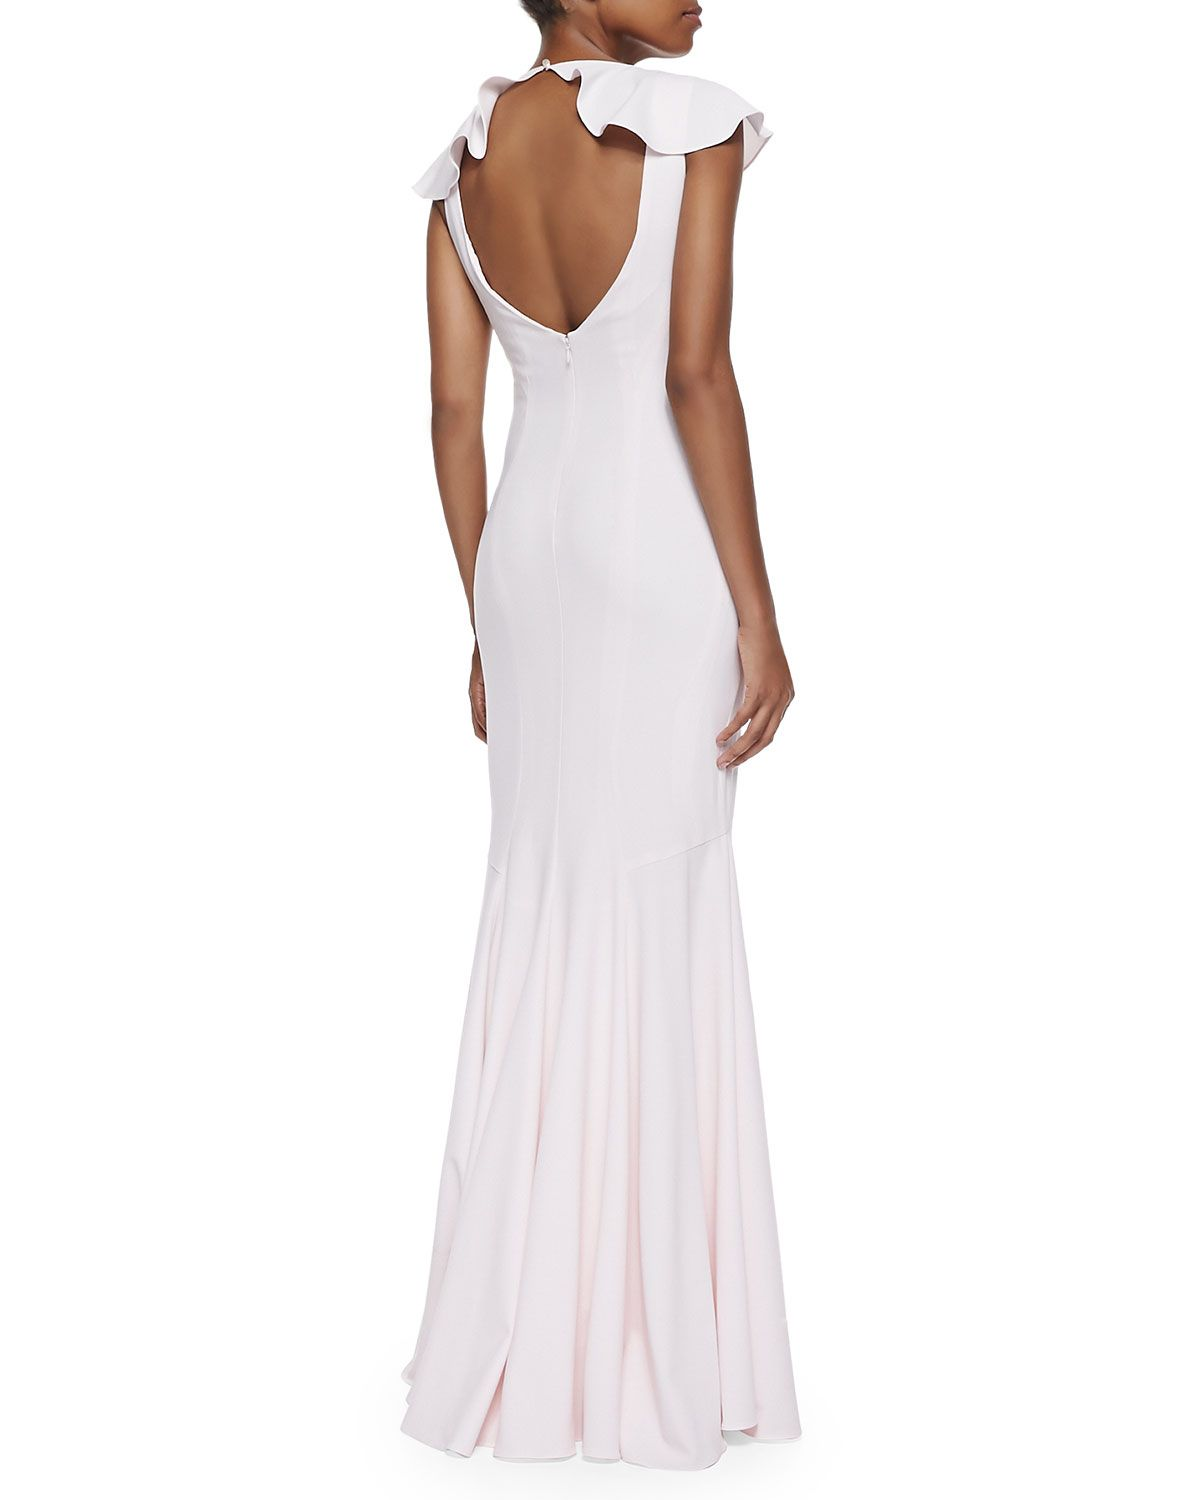 Neiman marcus dresses for weddings  New This Week Sale at Neiman Marcus  Bridesmaids  Pinterest  Cats